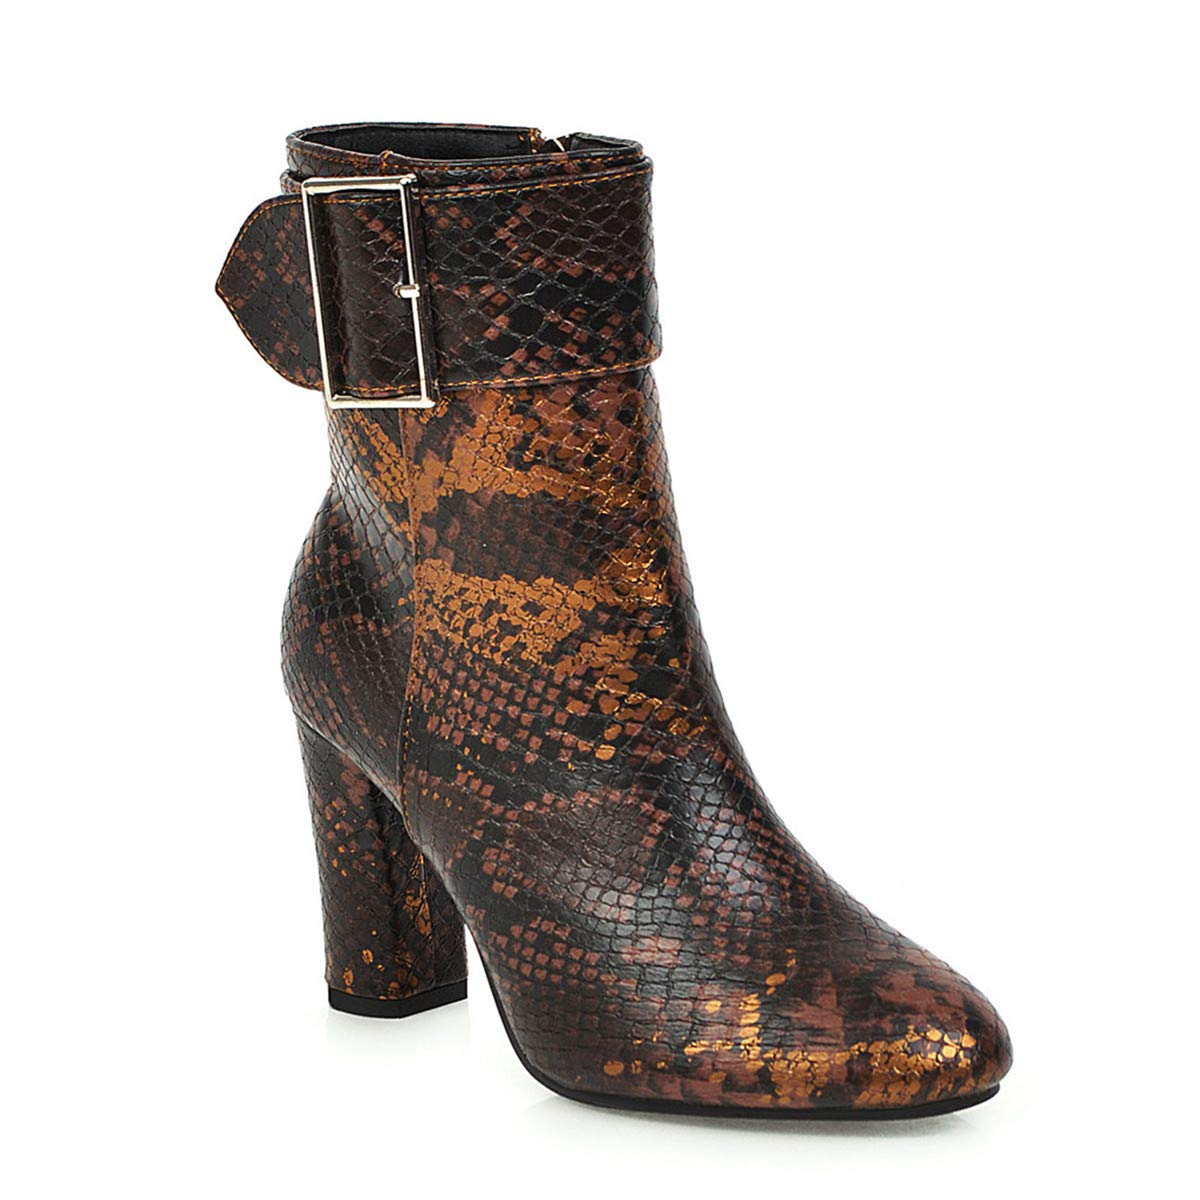 Thenxin Women's Ankle Chelsea Boots Snakeskin Side Zipper High-Heeled Bootie with Buckle Strap(Brown,8.5) by Thenxin-shoes